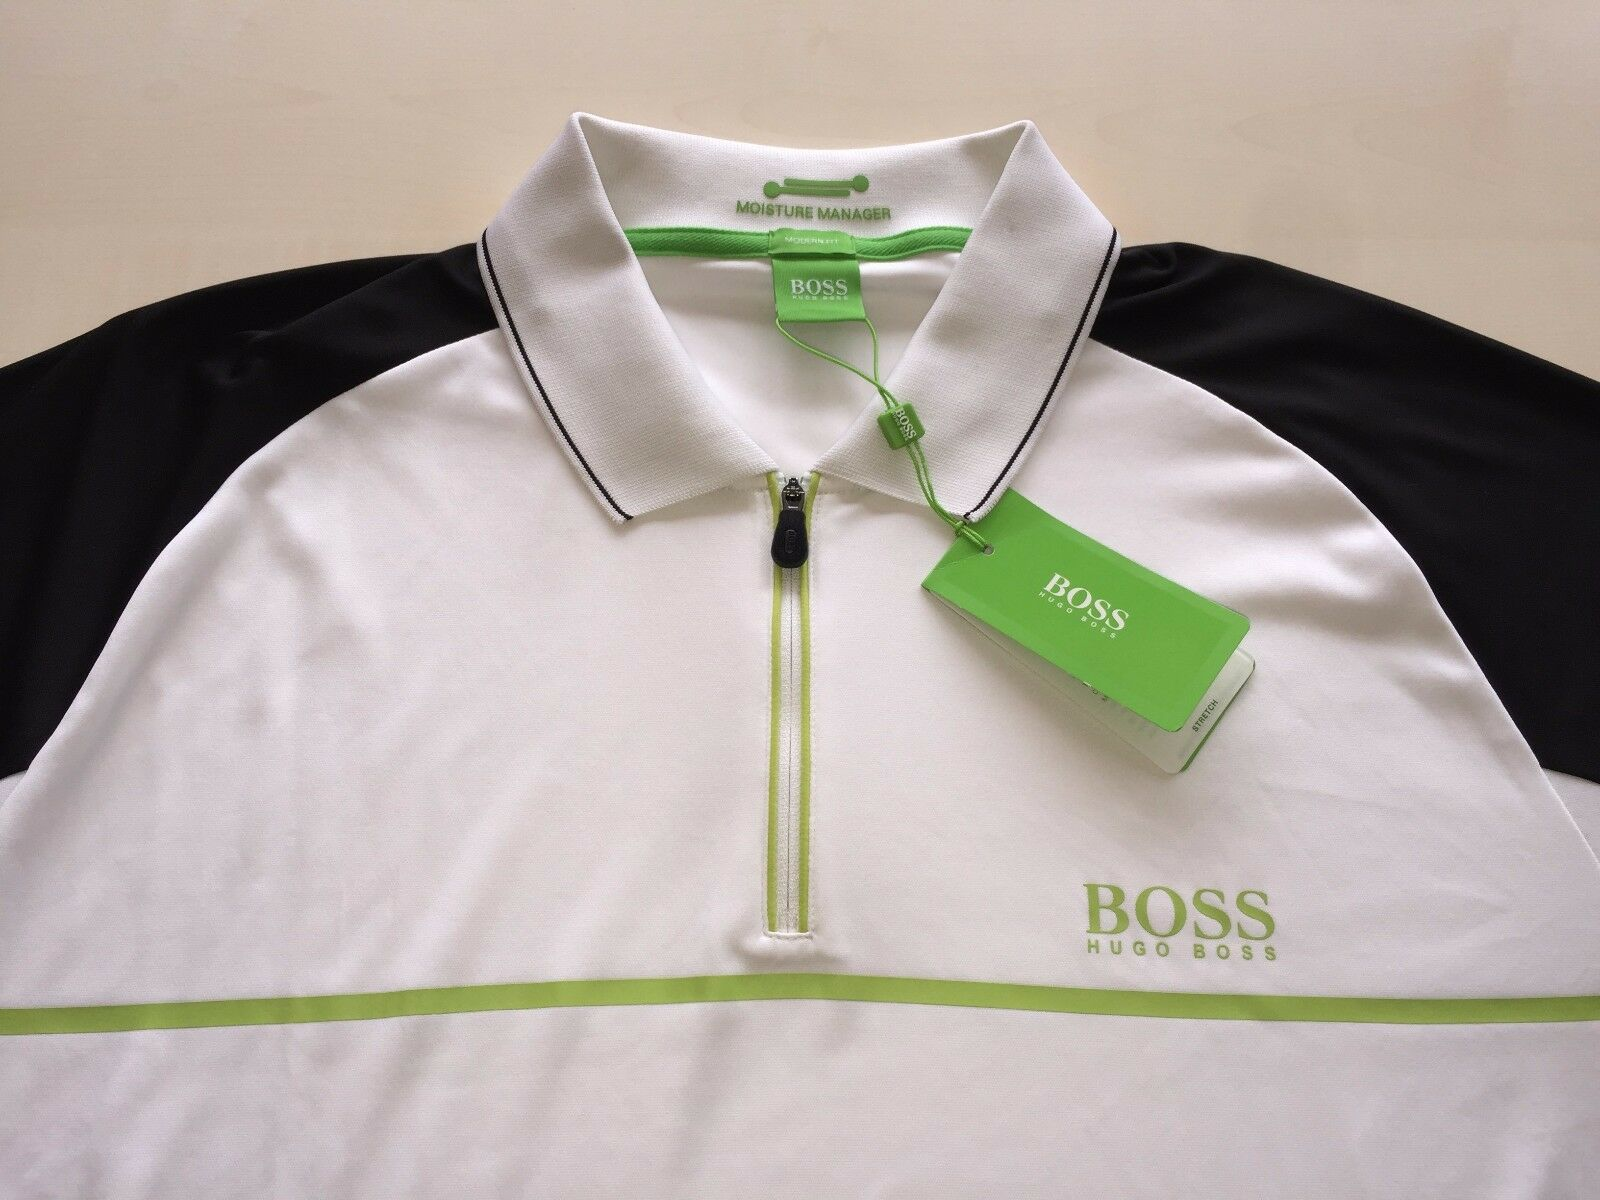 HUGO BOSS Grün LABEL Herren POLO SHIRT,PREK PRO,SZ -2XL/XXL, MODERN FIT, NEW